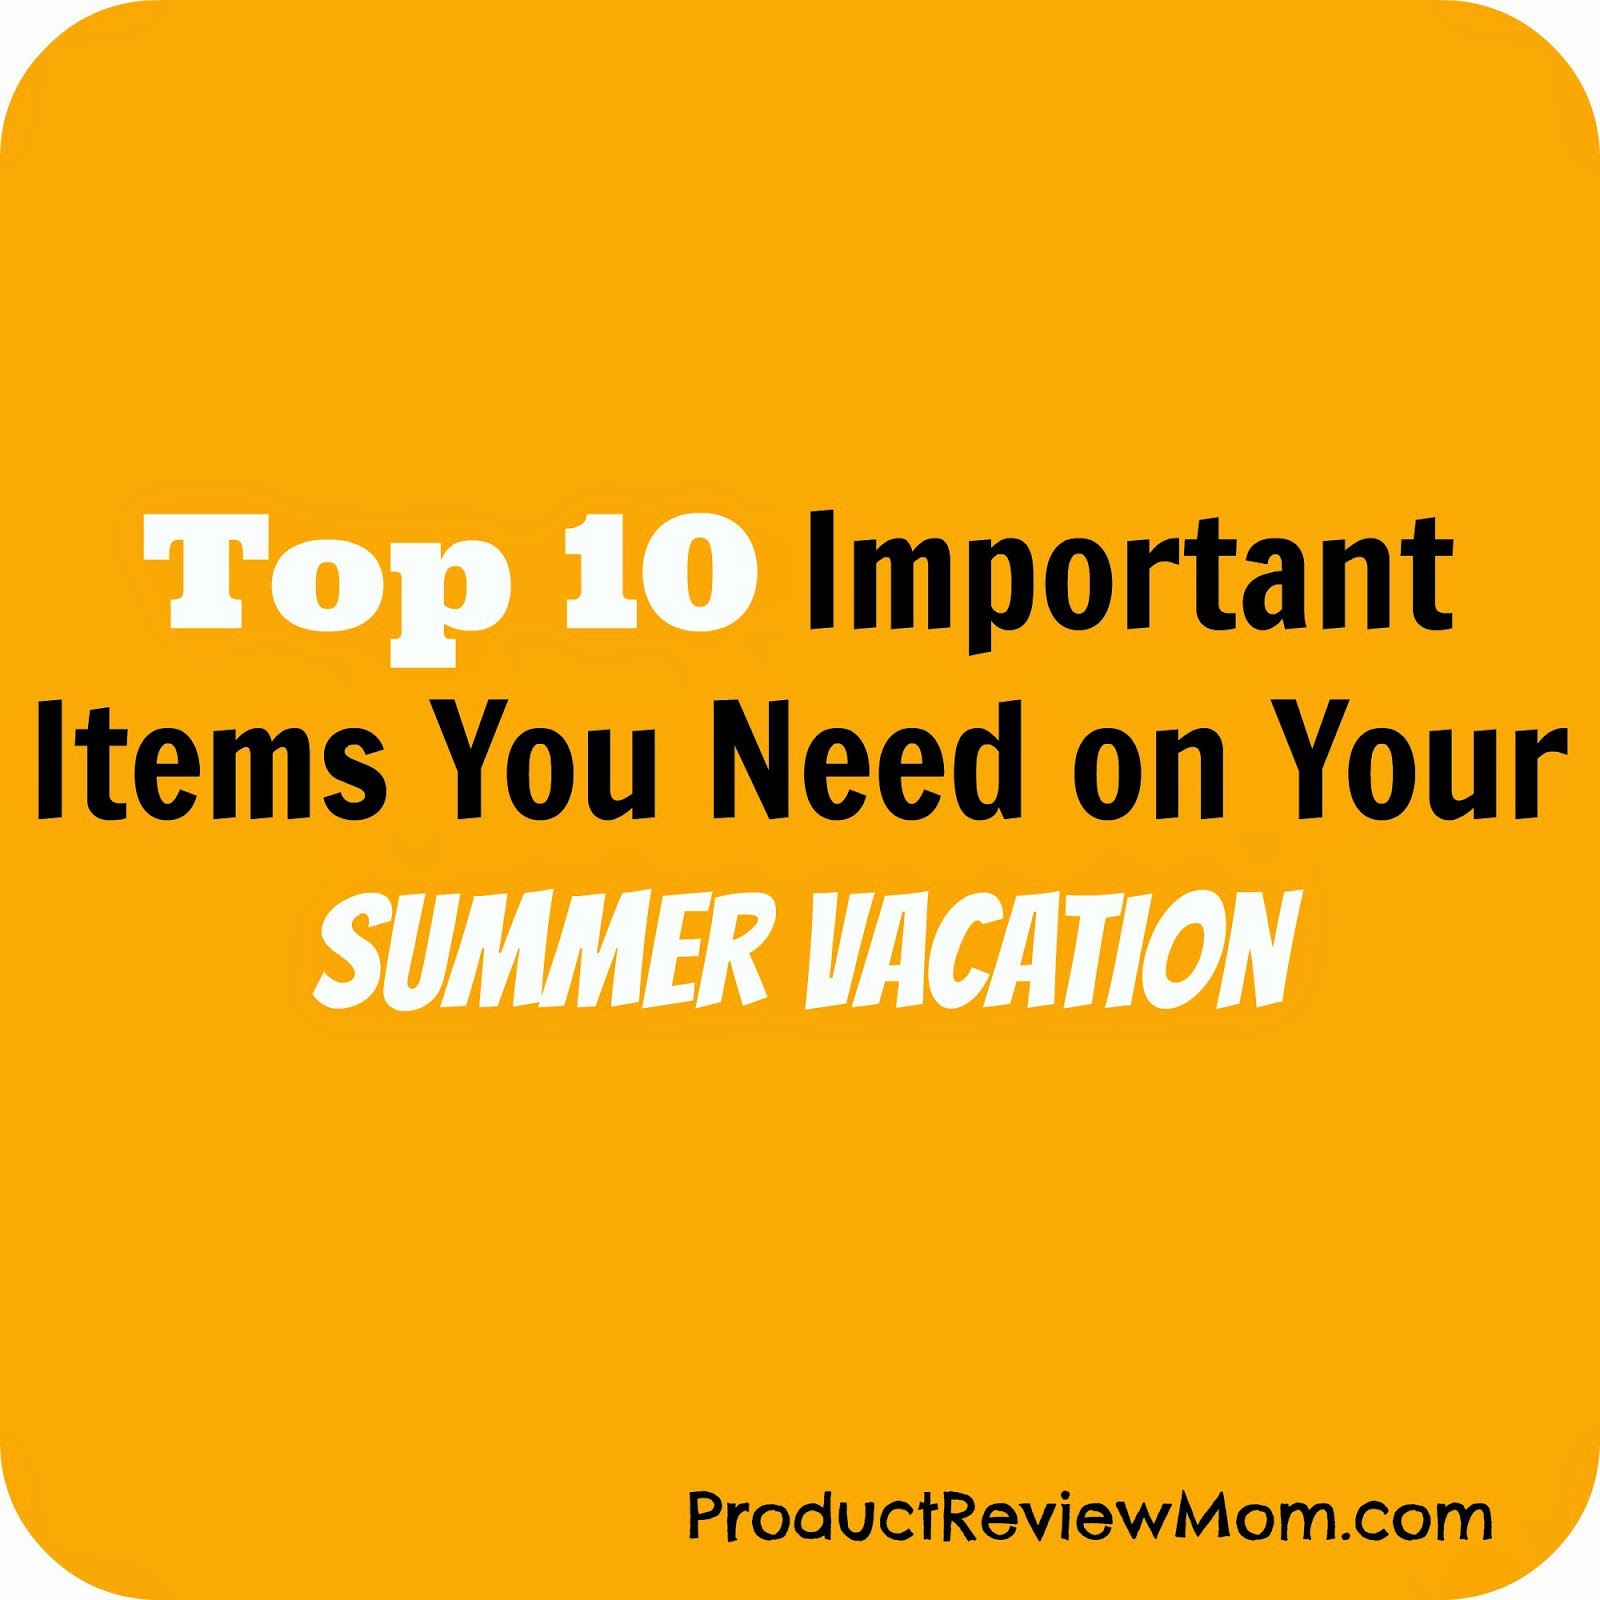 Top 10 Important Items You Need on Your Summer Vacation (Summer Blog Series) via ProductReviewMom.com